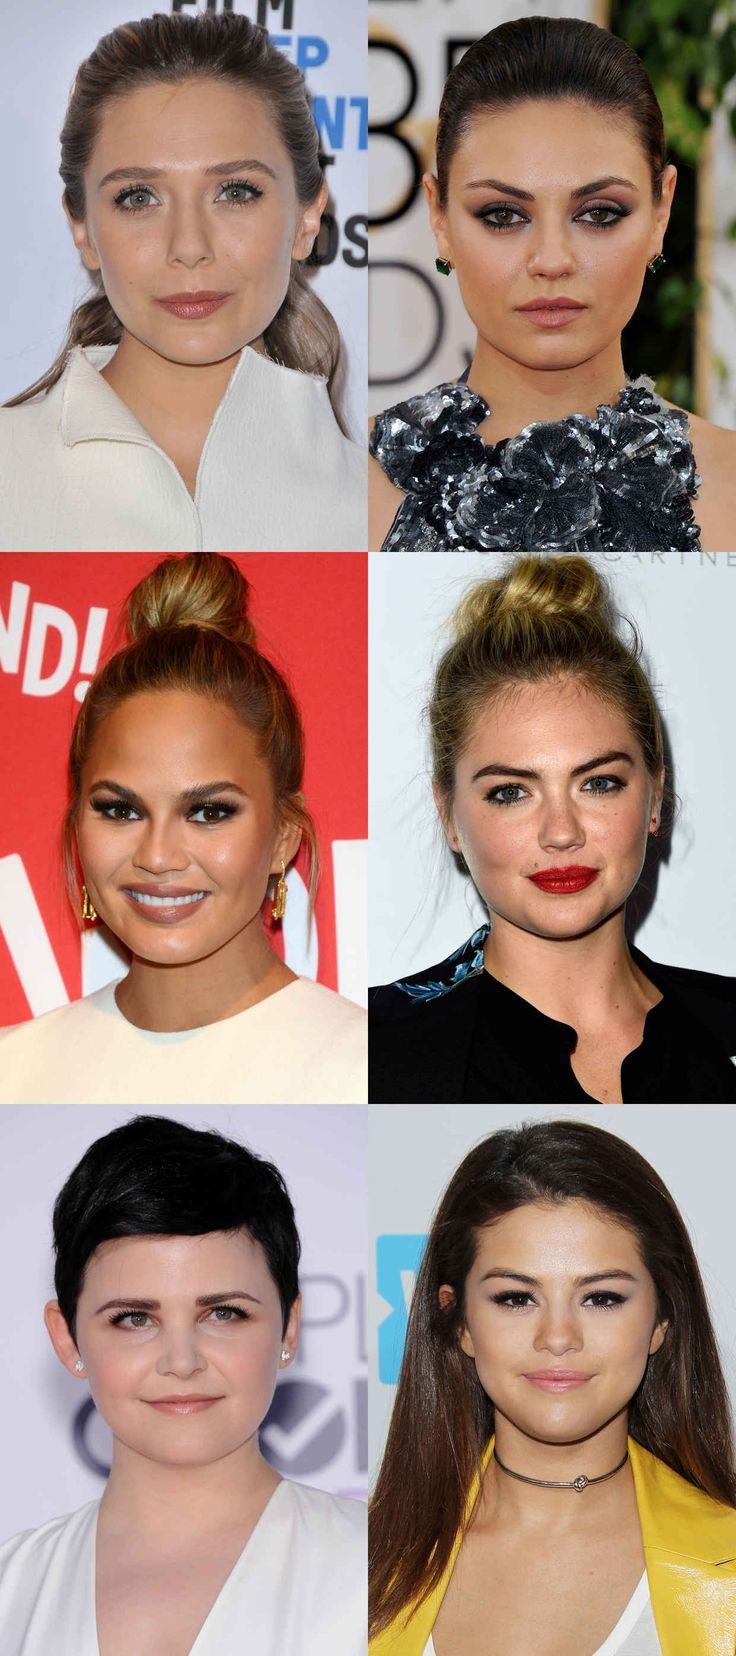 Flattering Celebrity Hairstyles for Round Faces - LiveAbout